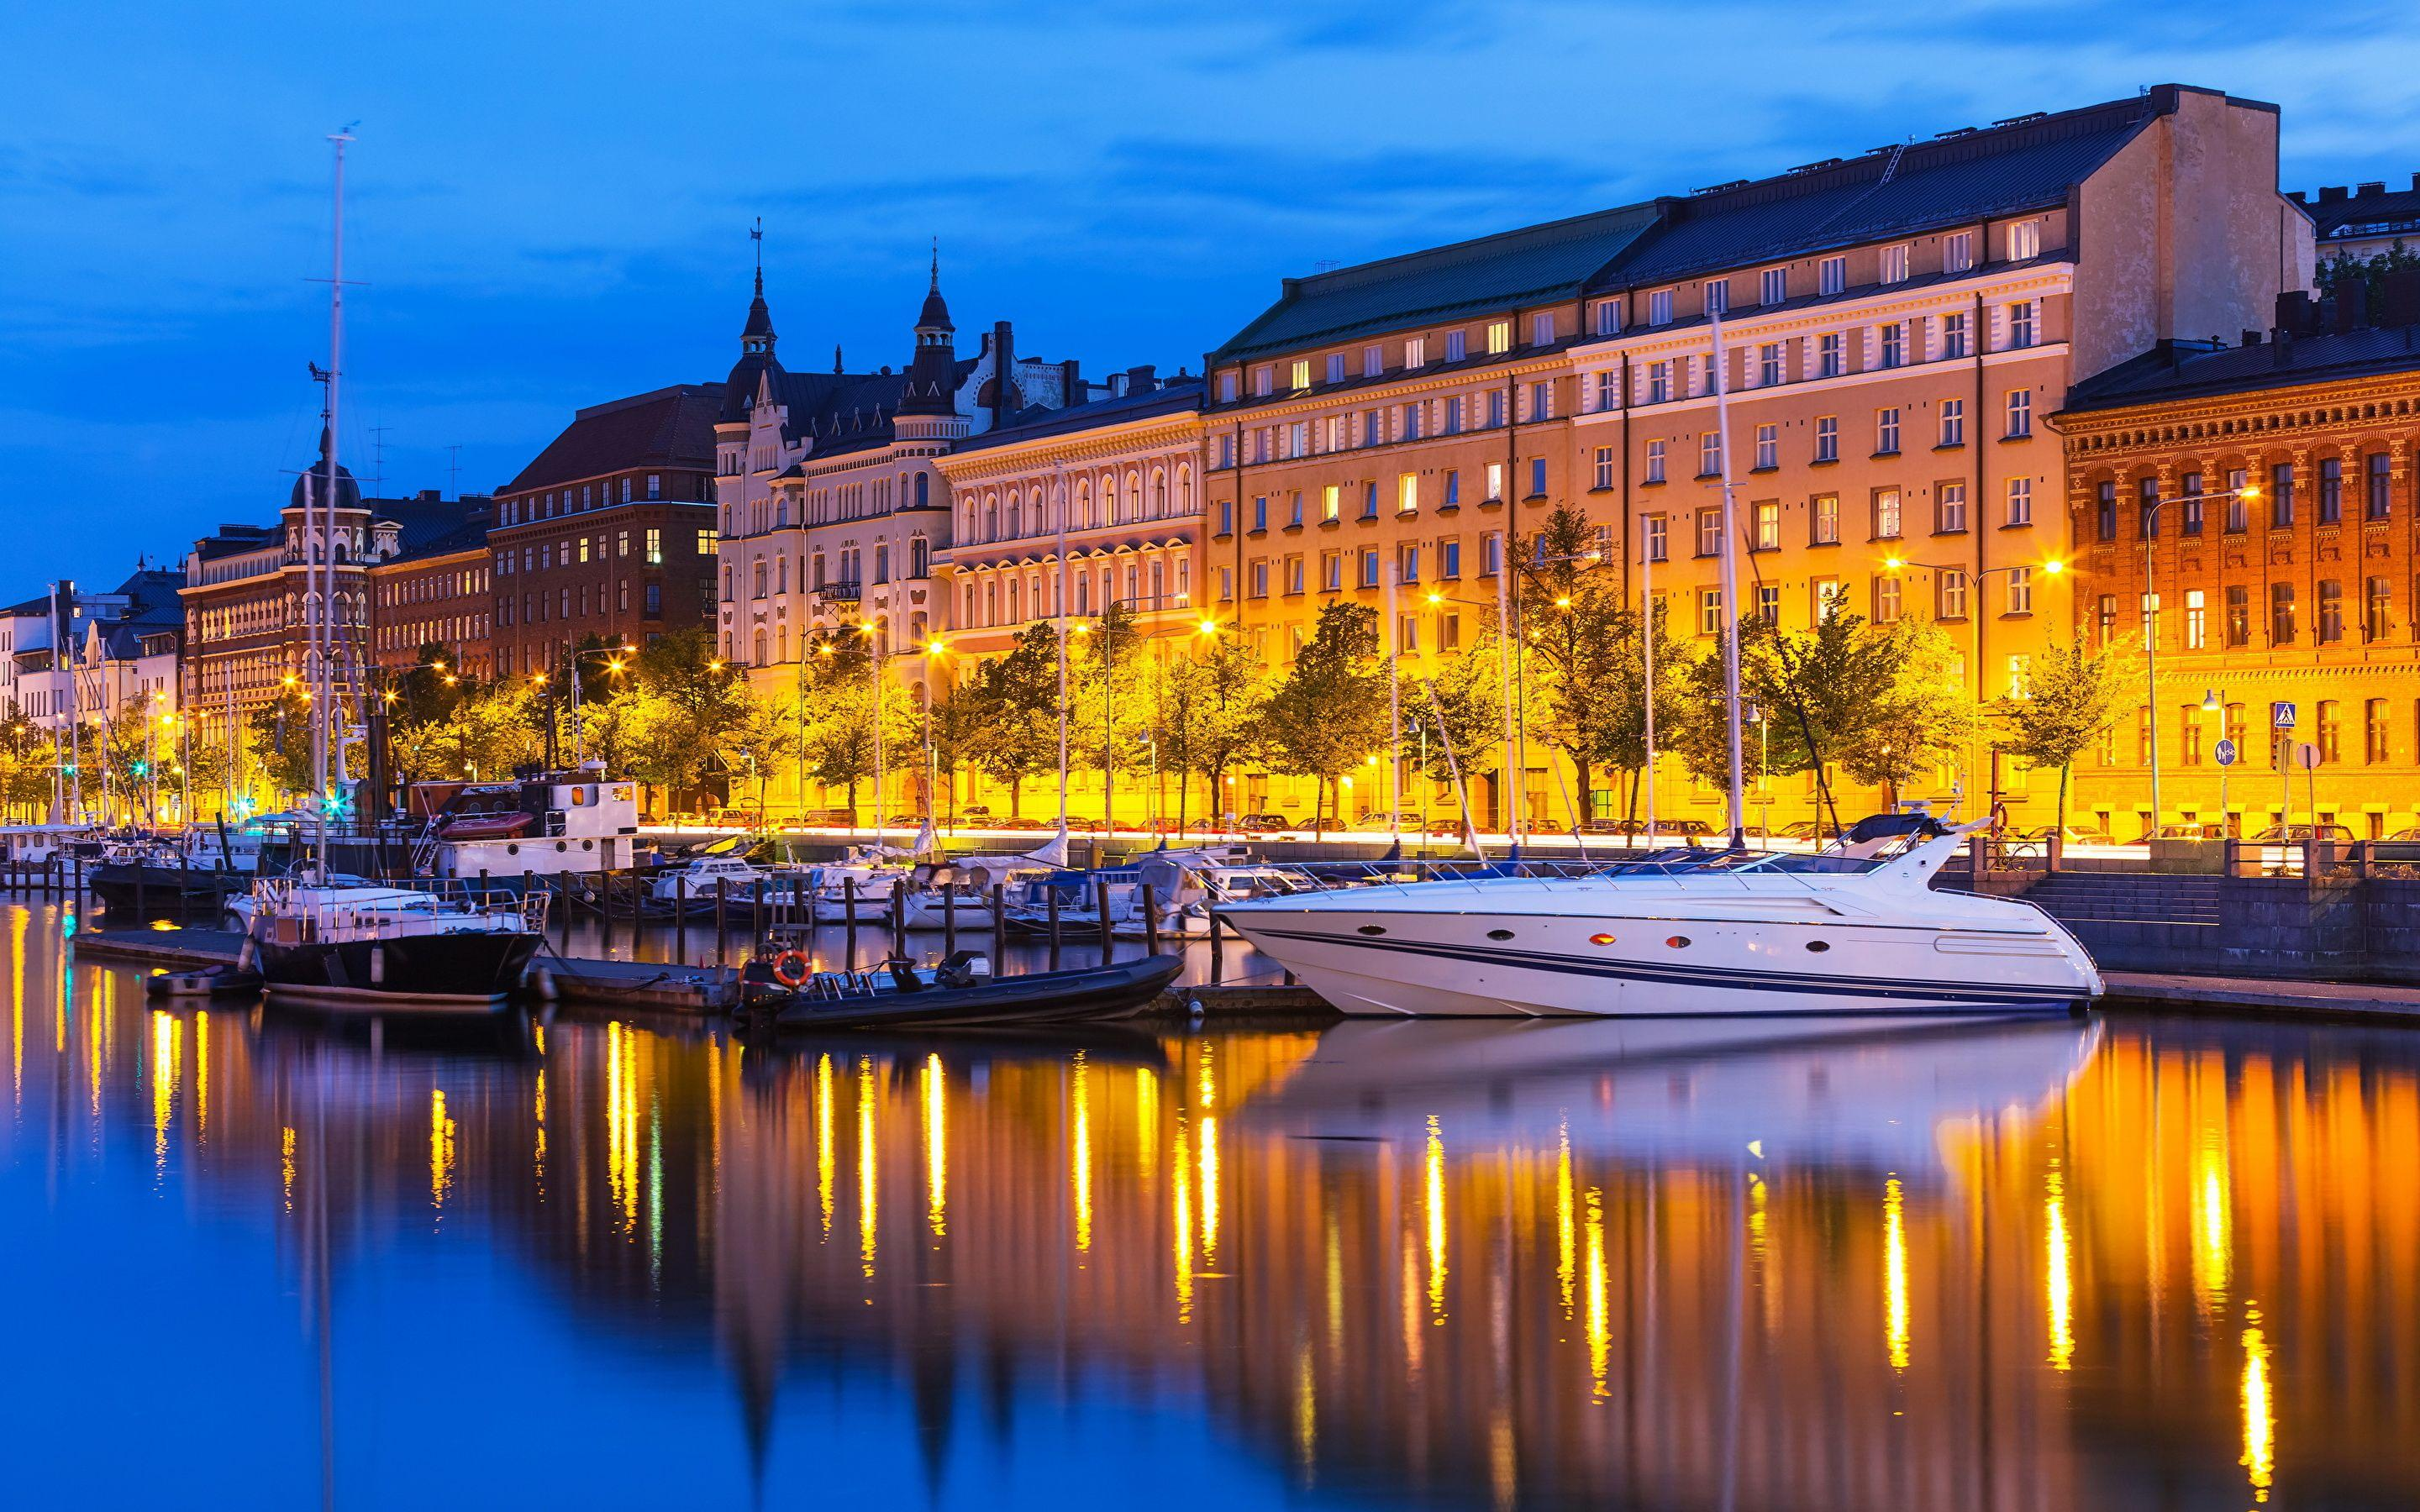 Wallpapers Helsinki Finland Yacht Rivers night time Cities 2880x1800